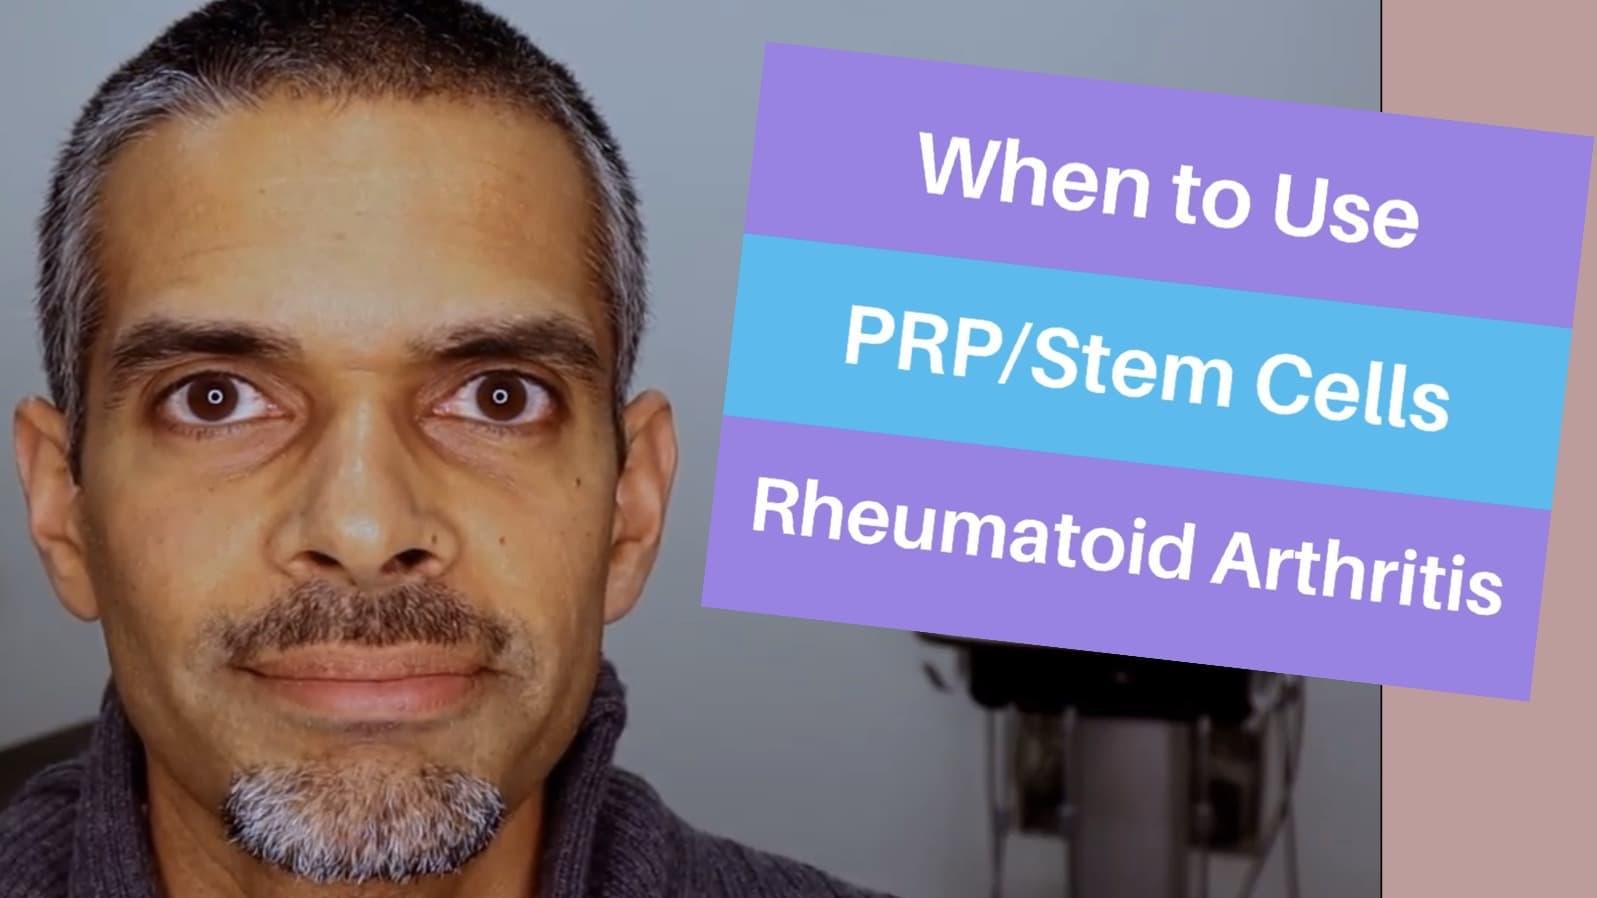 Rheumatoid arthritis treatment- when to use PRP and Stem cells.